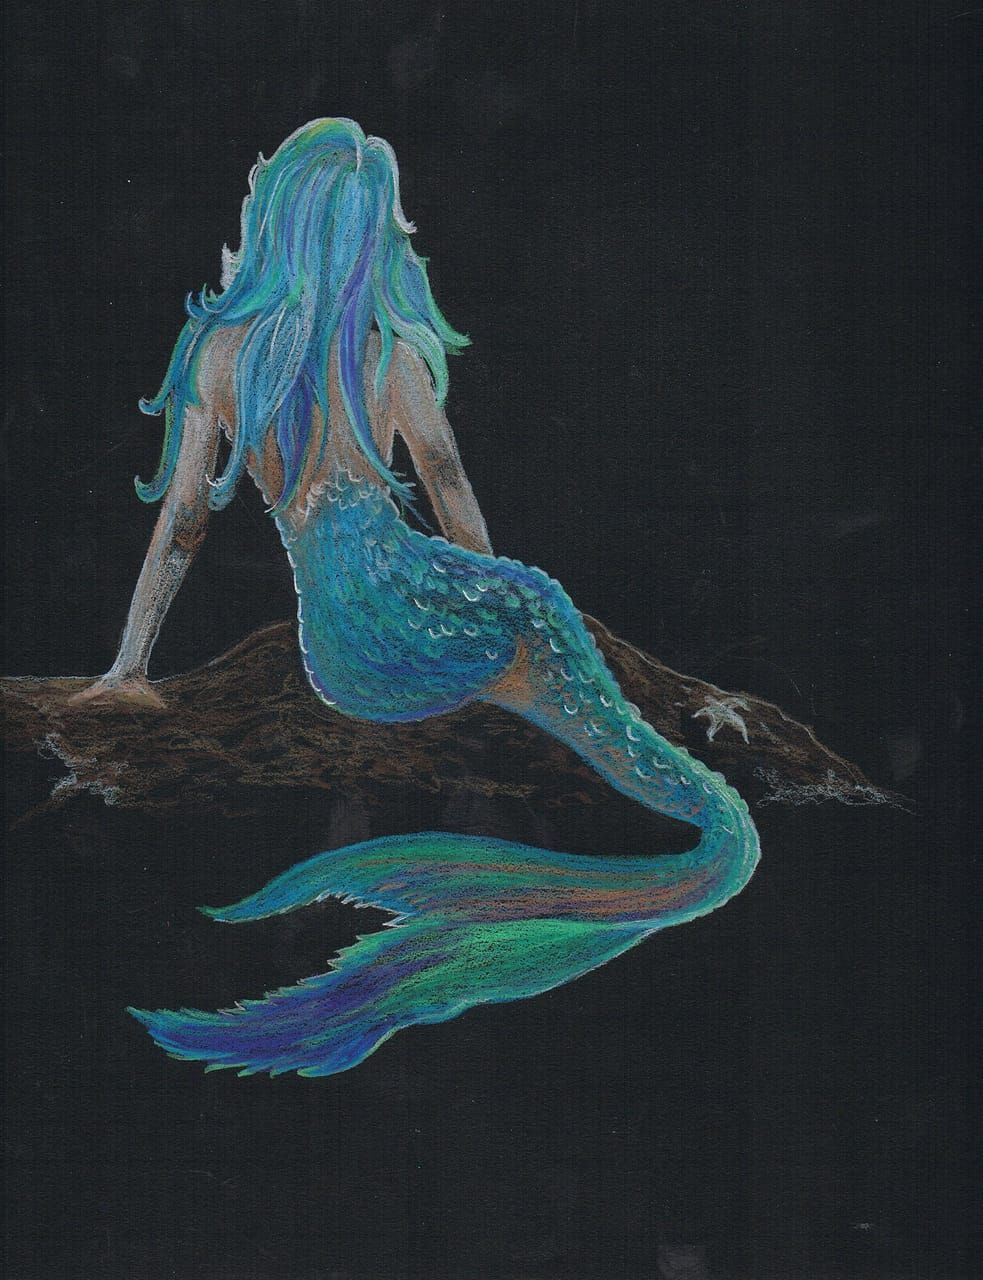 art, mermaid, mermaids and beauty